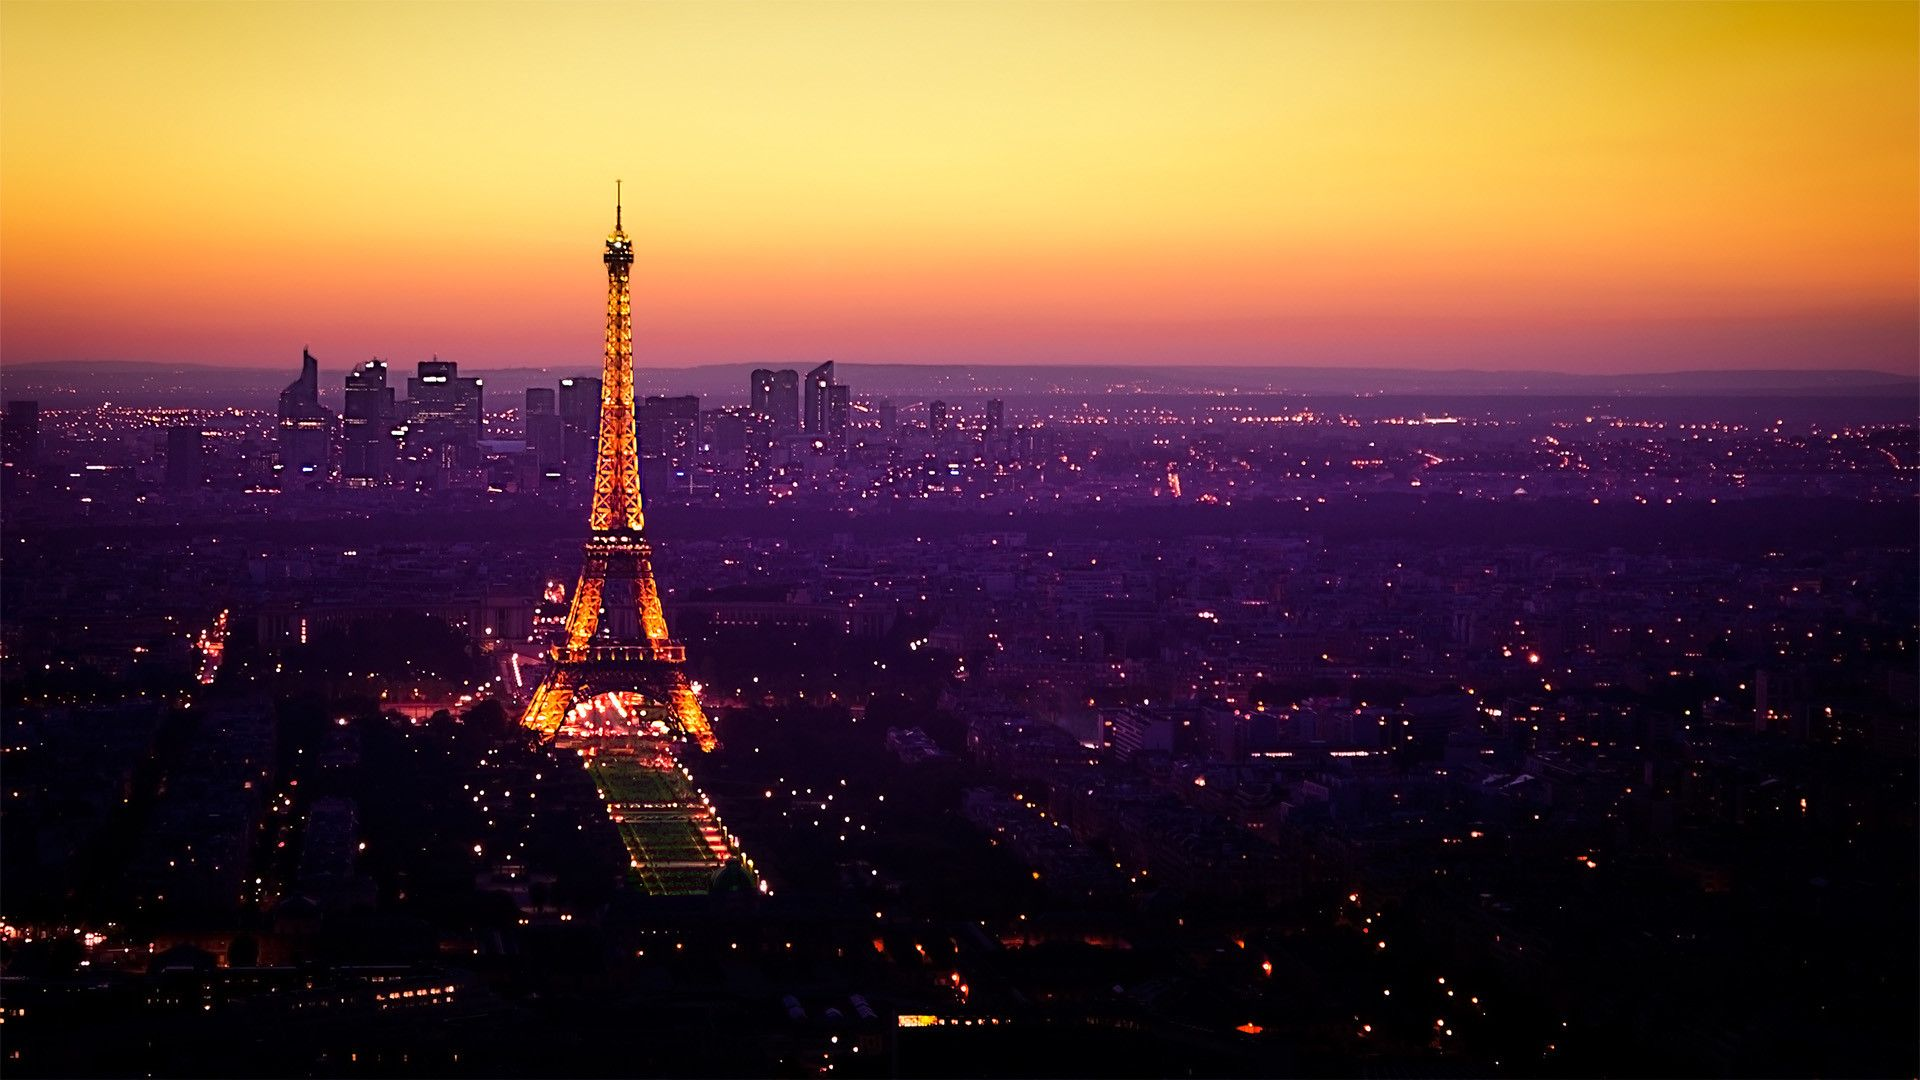 Paris Wallpaper For Desktop - WallpaperSafari